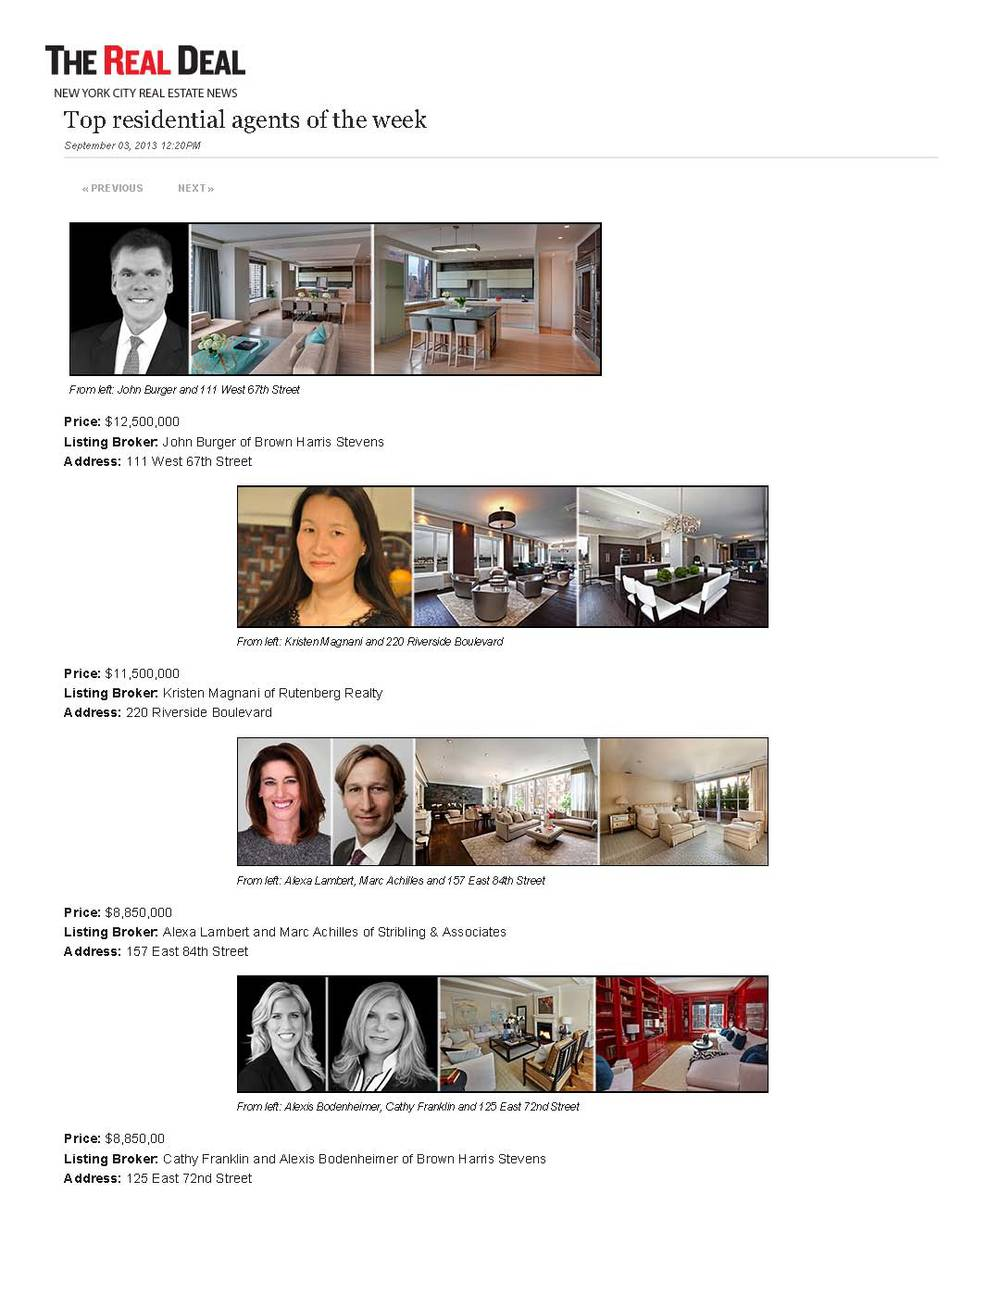 TRD Top Real Estate Brokers NYC _ August 30, 2013_Page_1.jpg